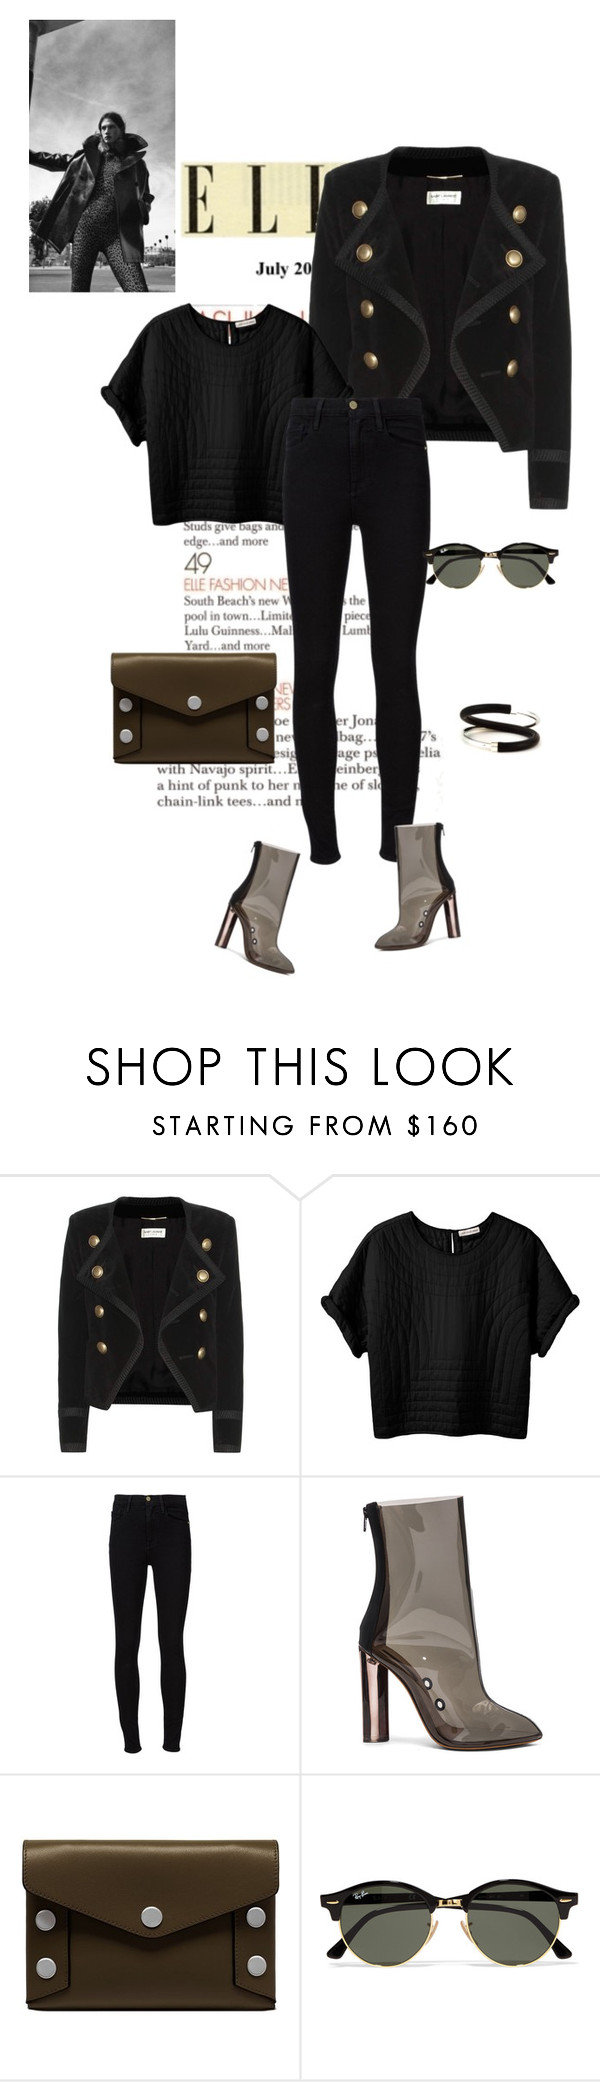 """#lookoftheday"" by ketp on Polyvore featuring мода, Yves Saint Laurent, Étoile Isabel Marant, Frame, adidas, Mulberry, Ray-Ban, FAUX/real, StreetStyle и black"